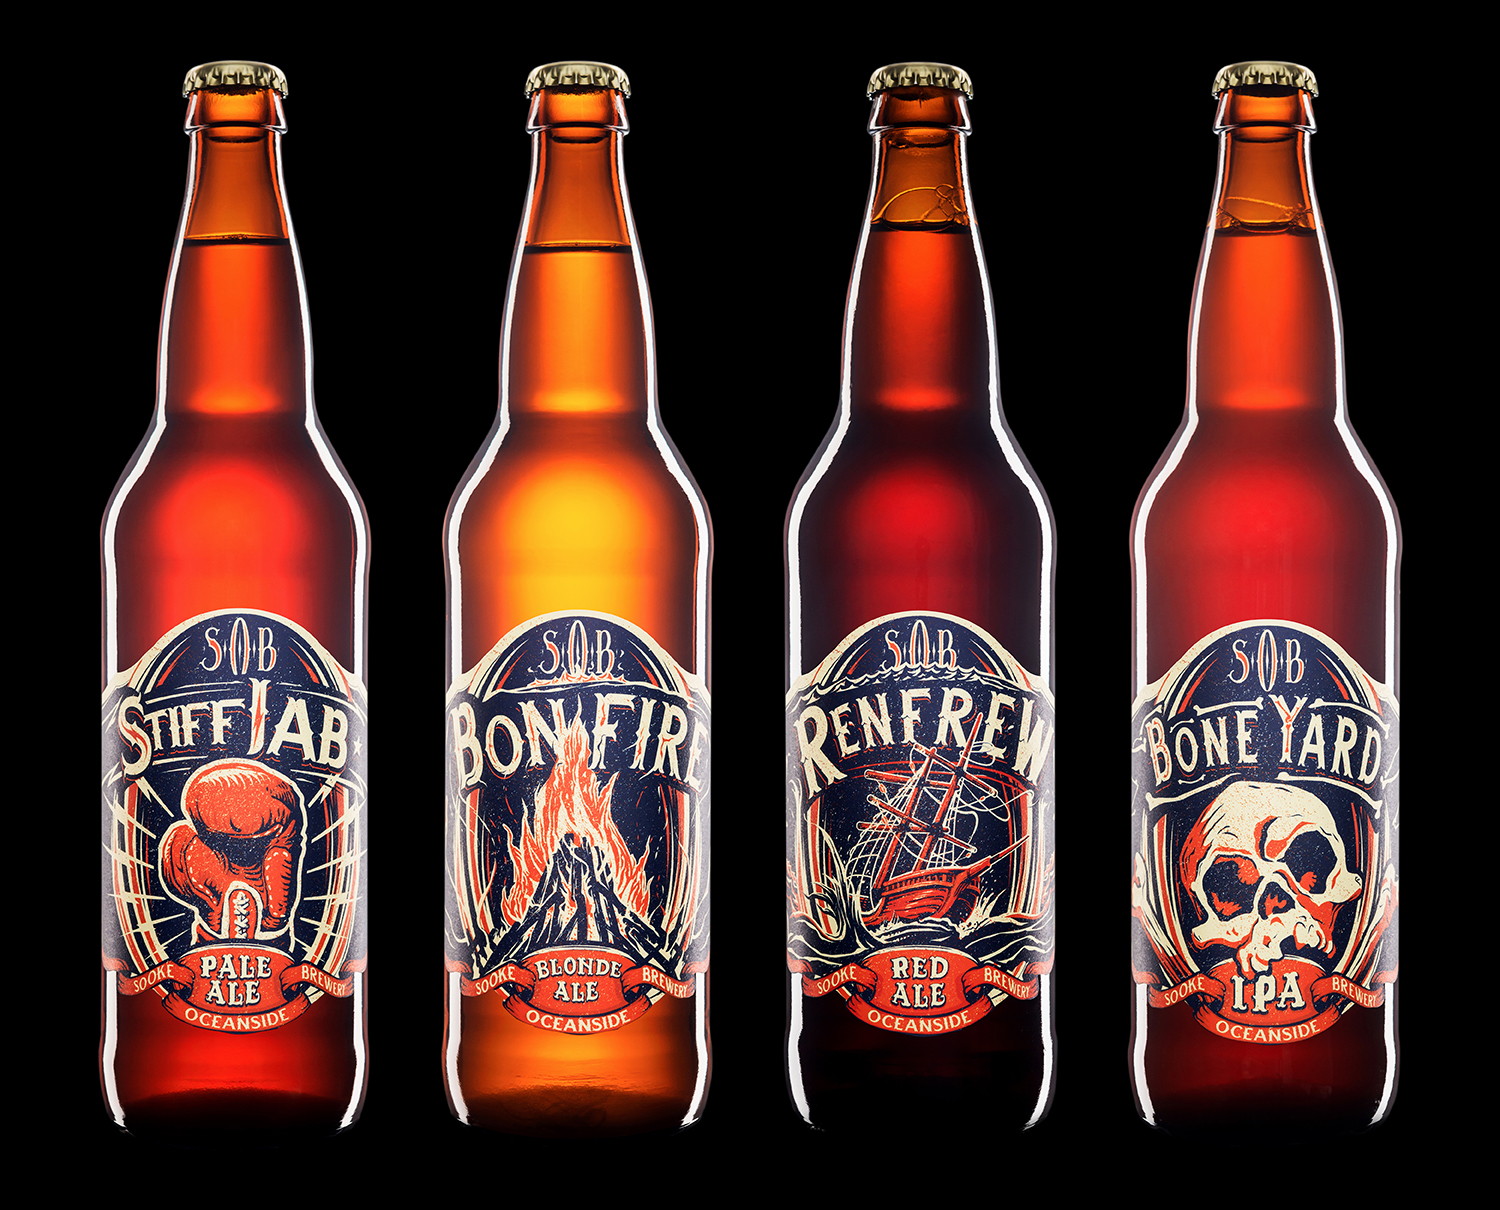 Packaging and Branding for Sooke Oceanside Brewery (SOB)